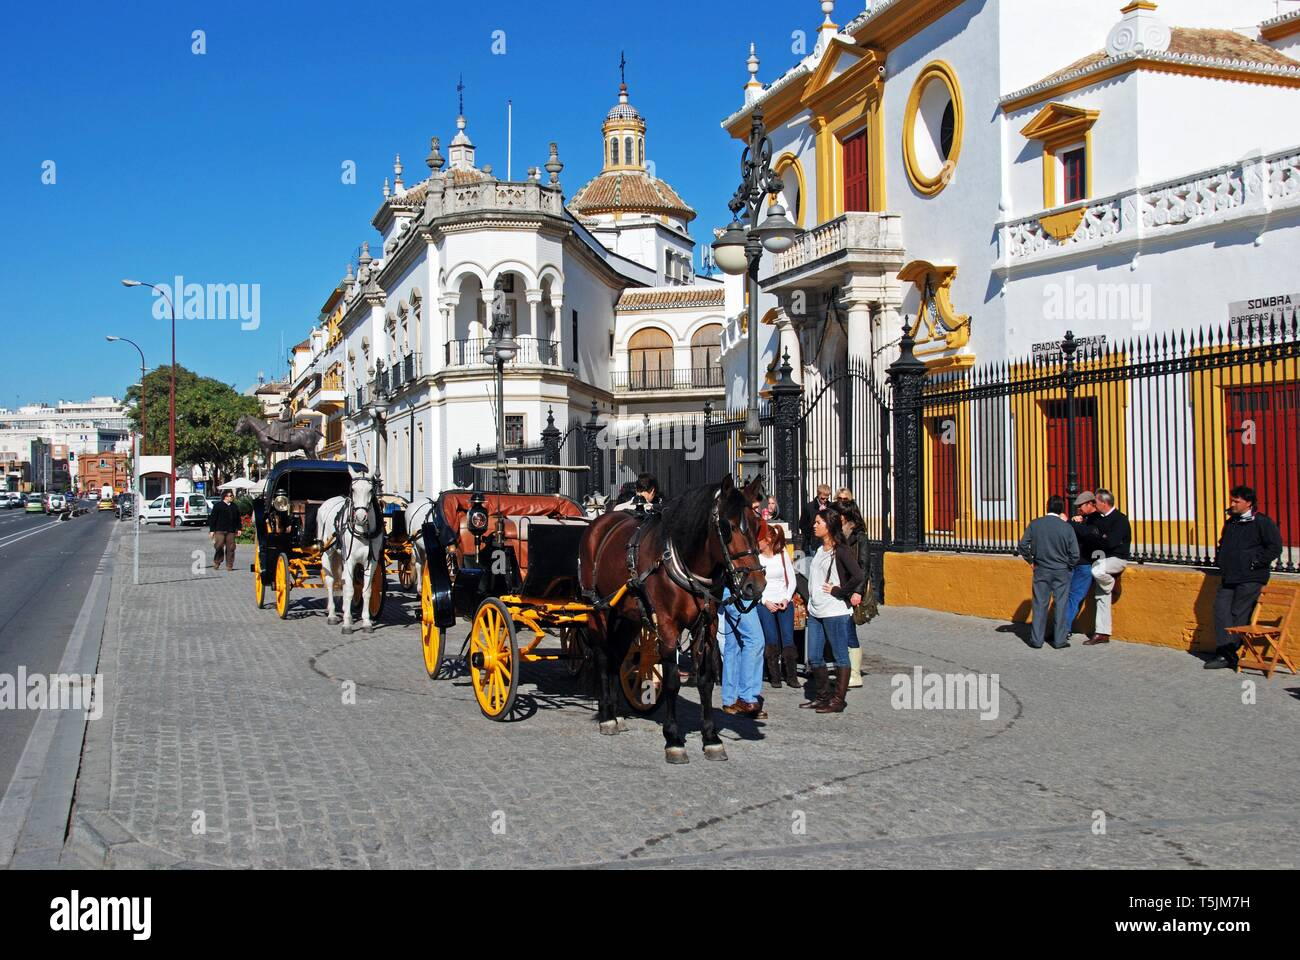 SEVILLE, SPAIN - NOVEMBER 15, 2008 - View of the bullring with horse drawn carriages in the foreground, Seville, Seville Province, Andalusia, Spain, E - Stock Image